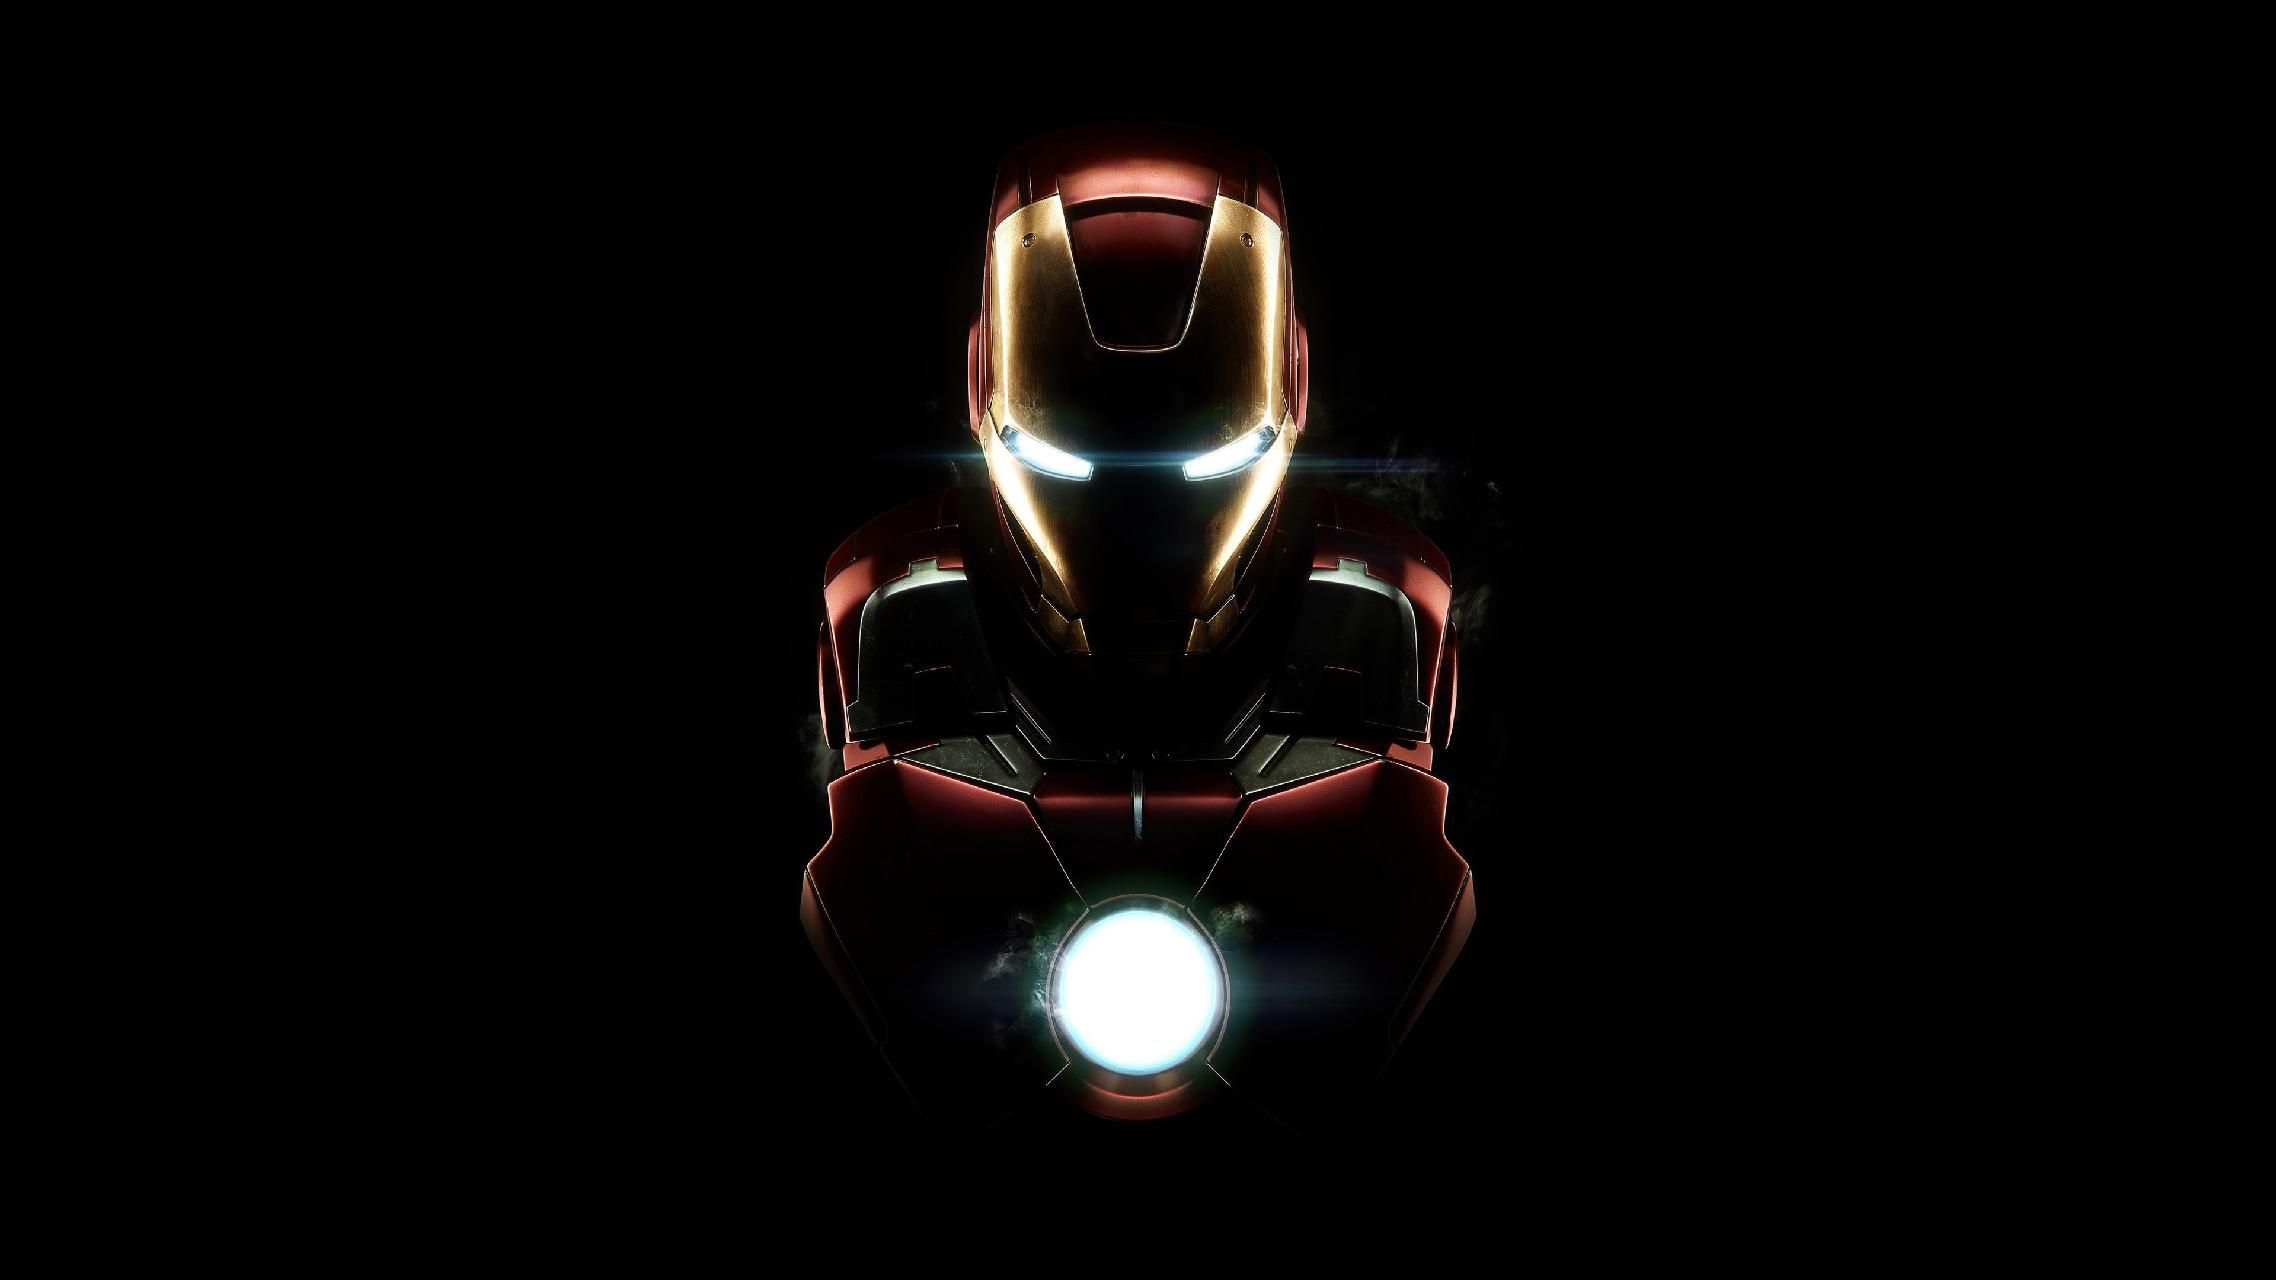 Download Iron Man Wallpaper By Viby87 A7 Free On Zedge Now